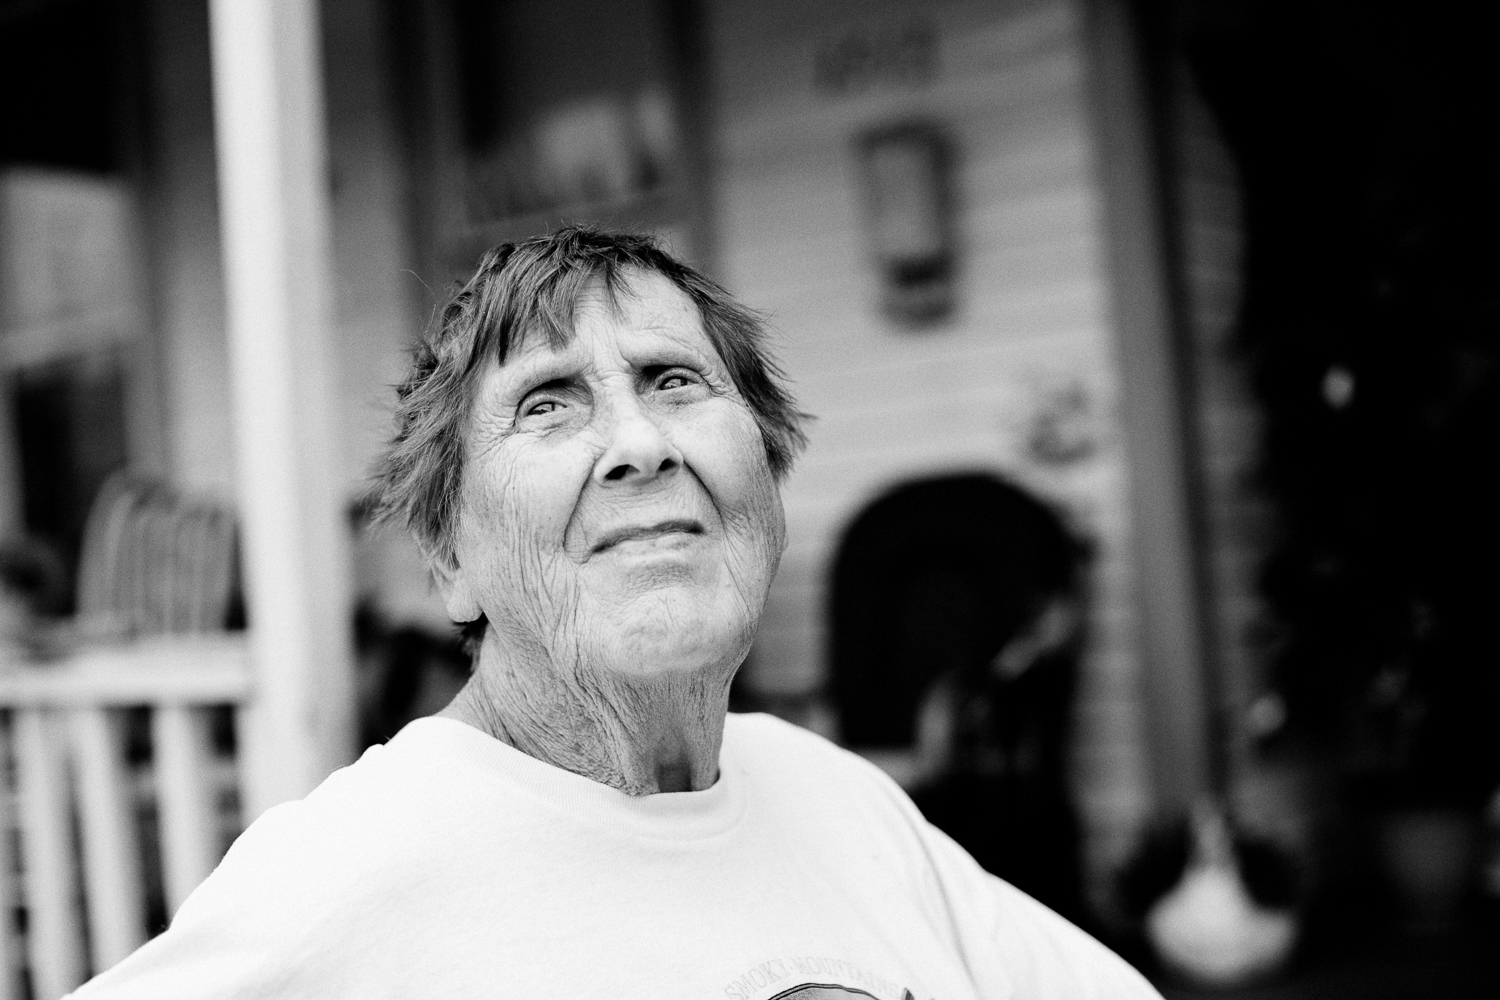 Viola, 84 has been living in the East End neighborhood of Portsmouth for decades, a neighborhood known for its high crime rate, poverty, and heroin addiction.